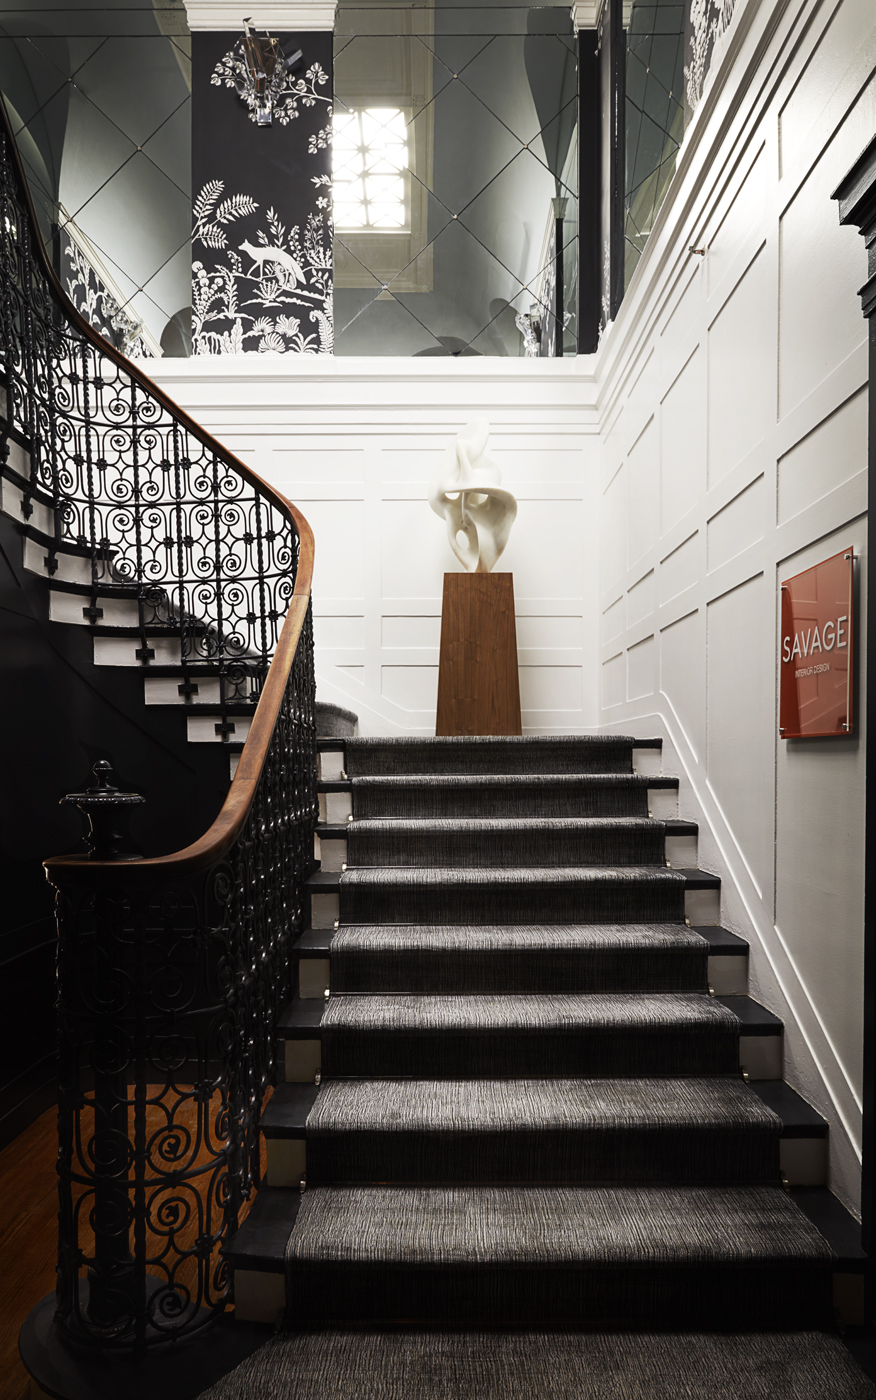 Staircase white paneled walls; Patterson Flynn & Martin runner; mirrored niche insets in harlequin pattern | Savage Interior Design